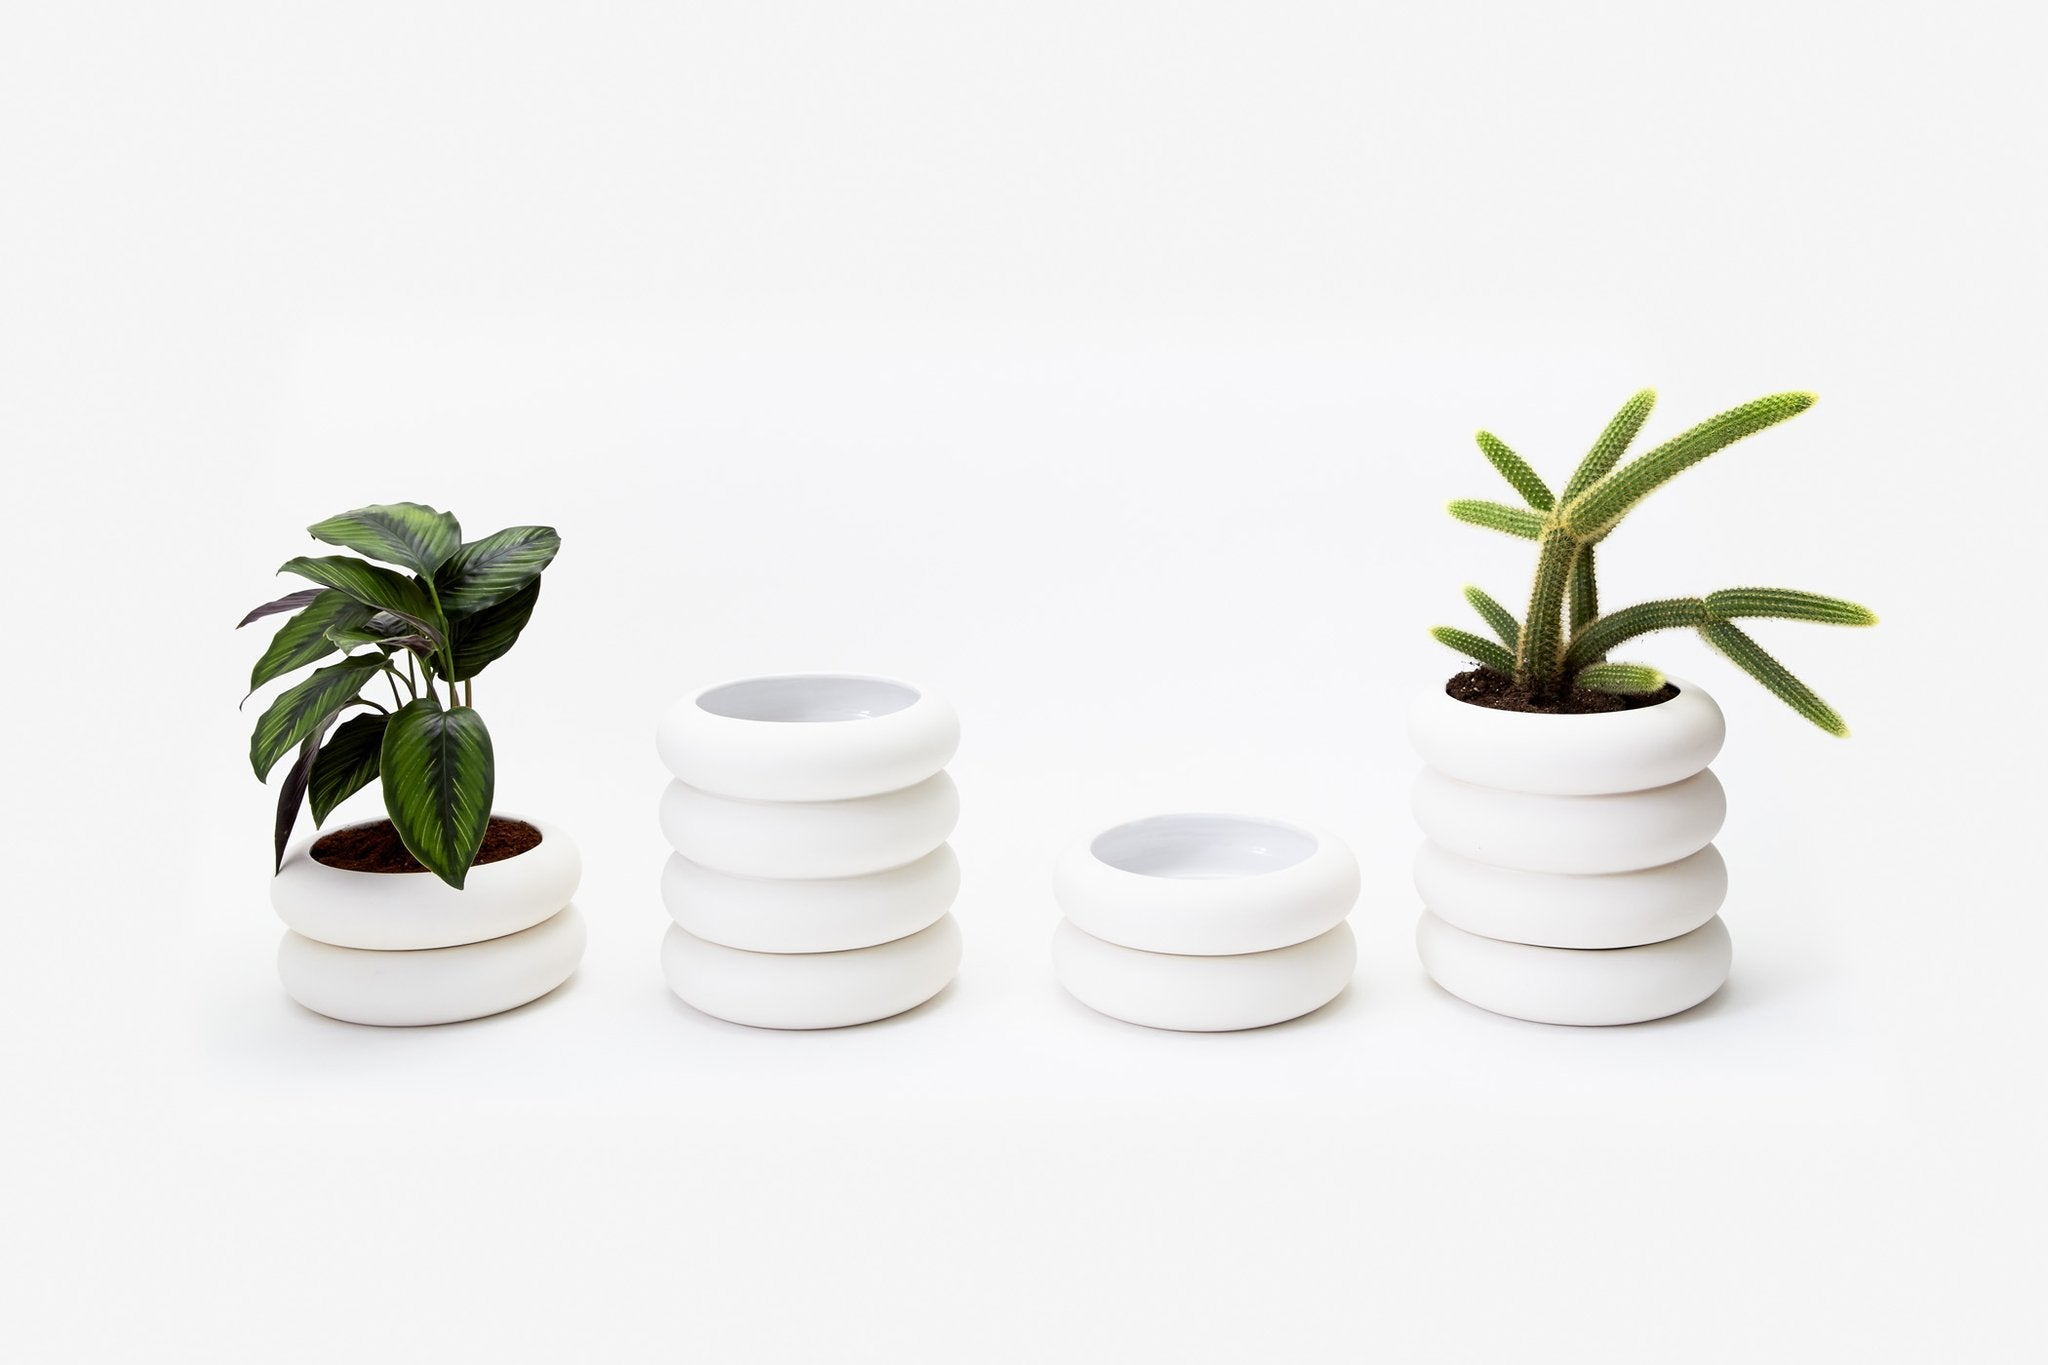 Areaware Stacking Planters White Ceramic by Chen Chen and Kai Williams